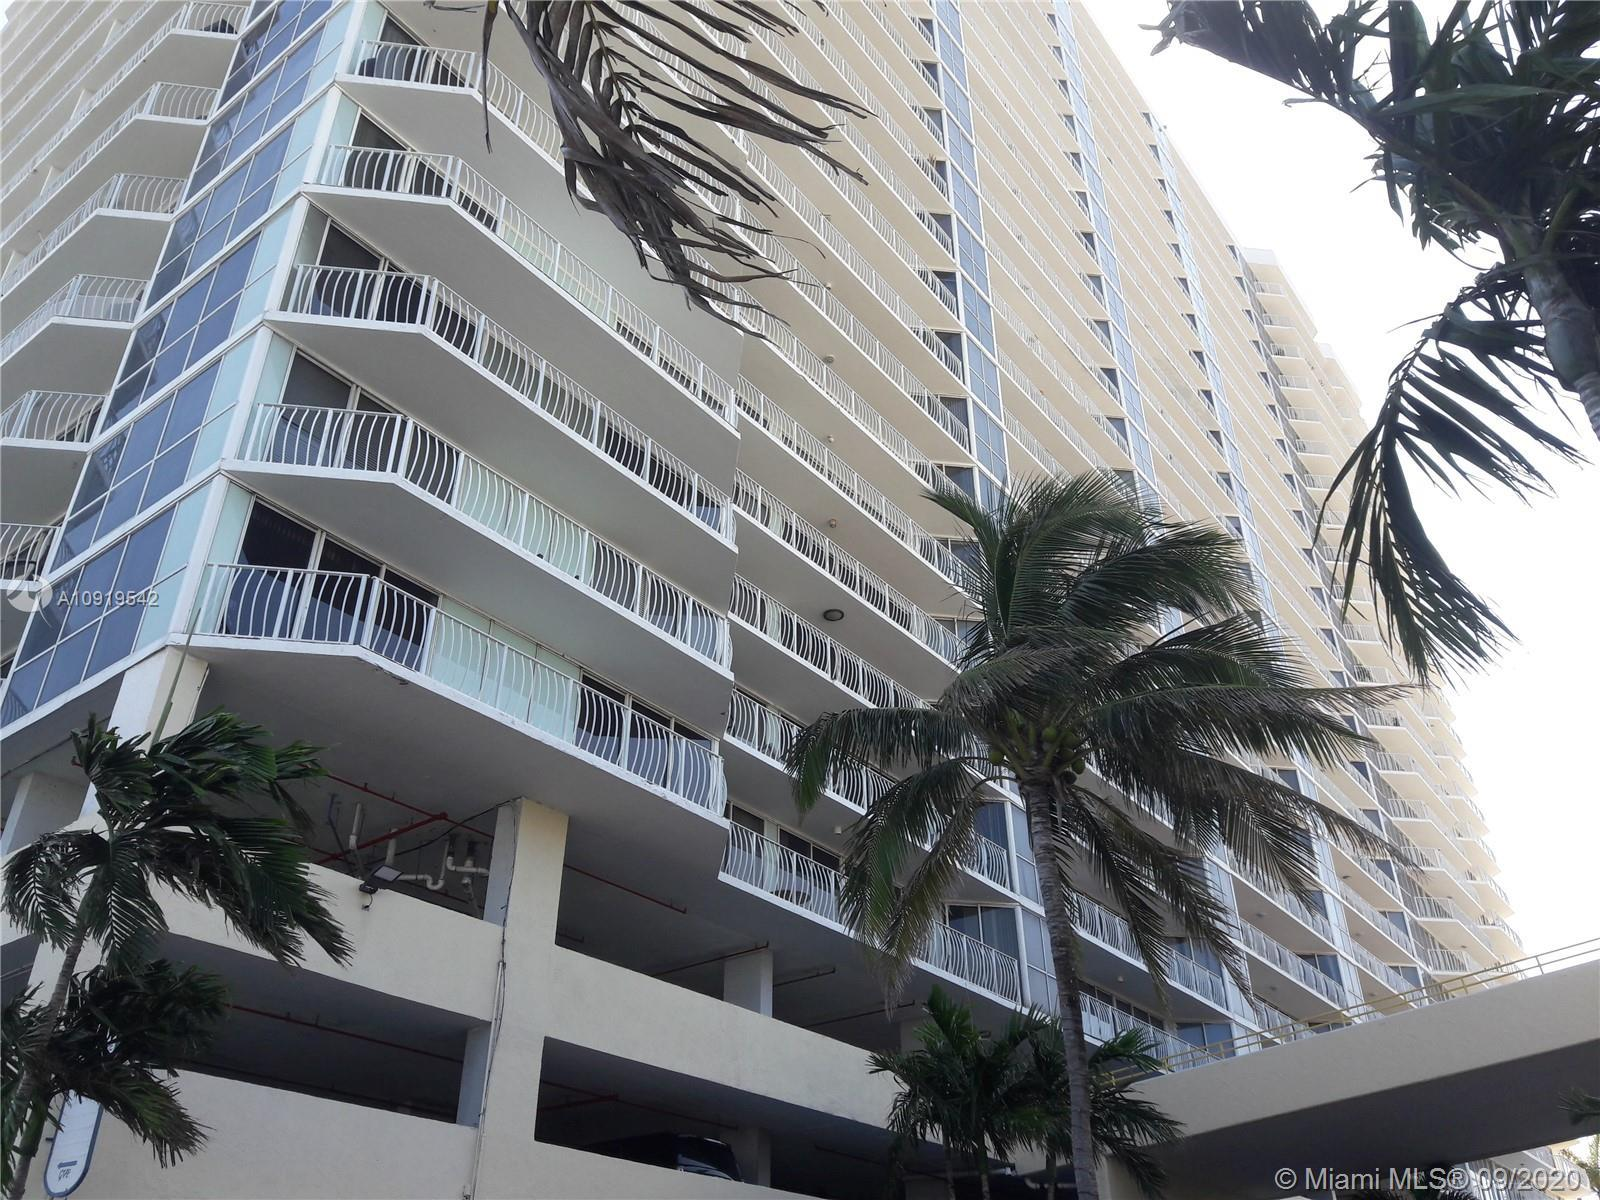 Great Deal in North Bay Village at the Grandview Palace and Marina. Spacious two bedroom condo with